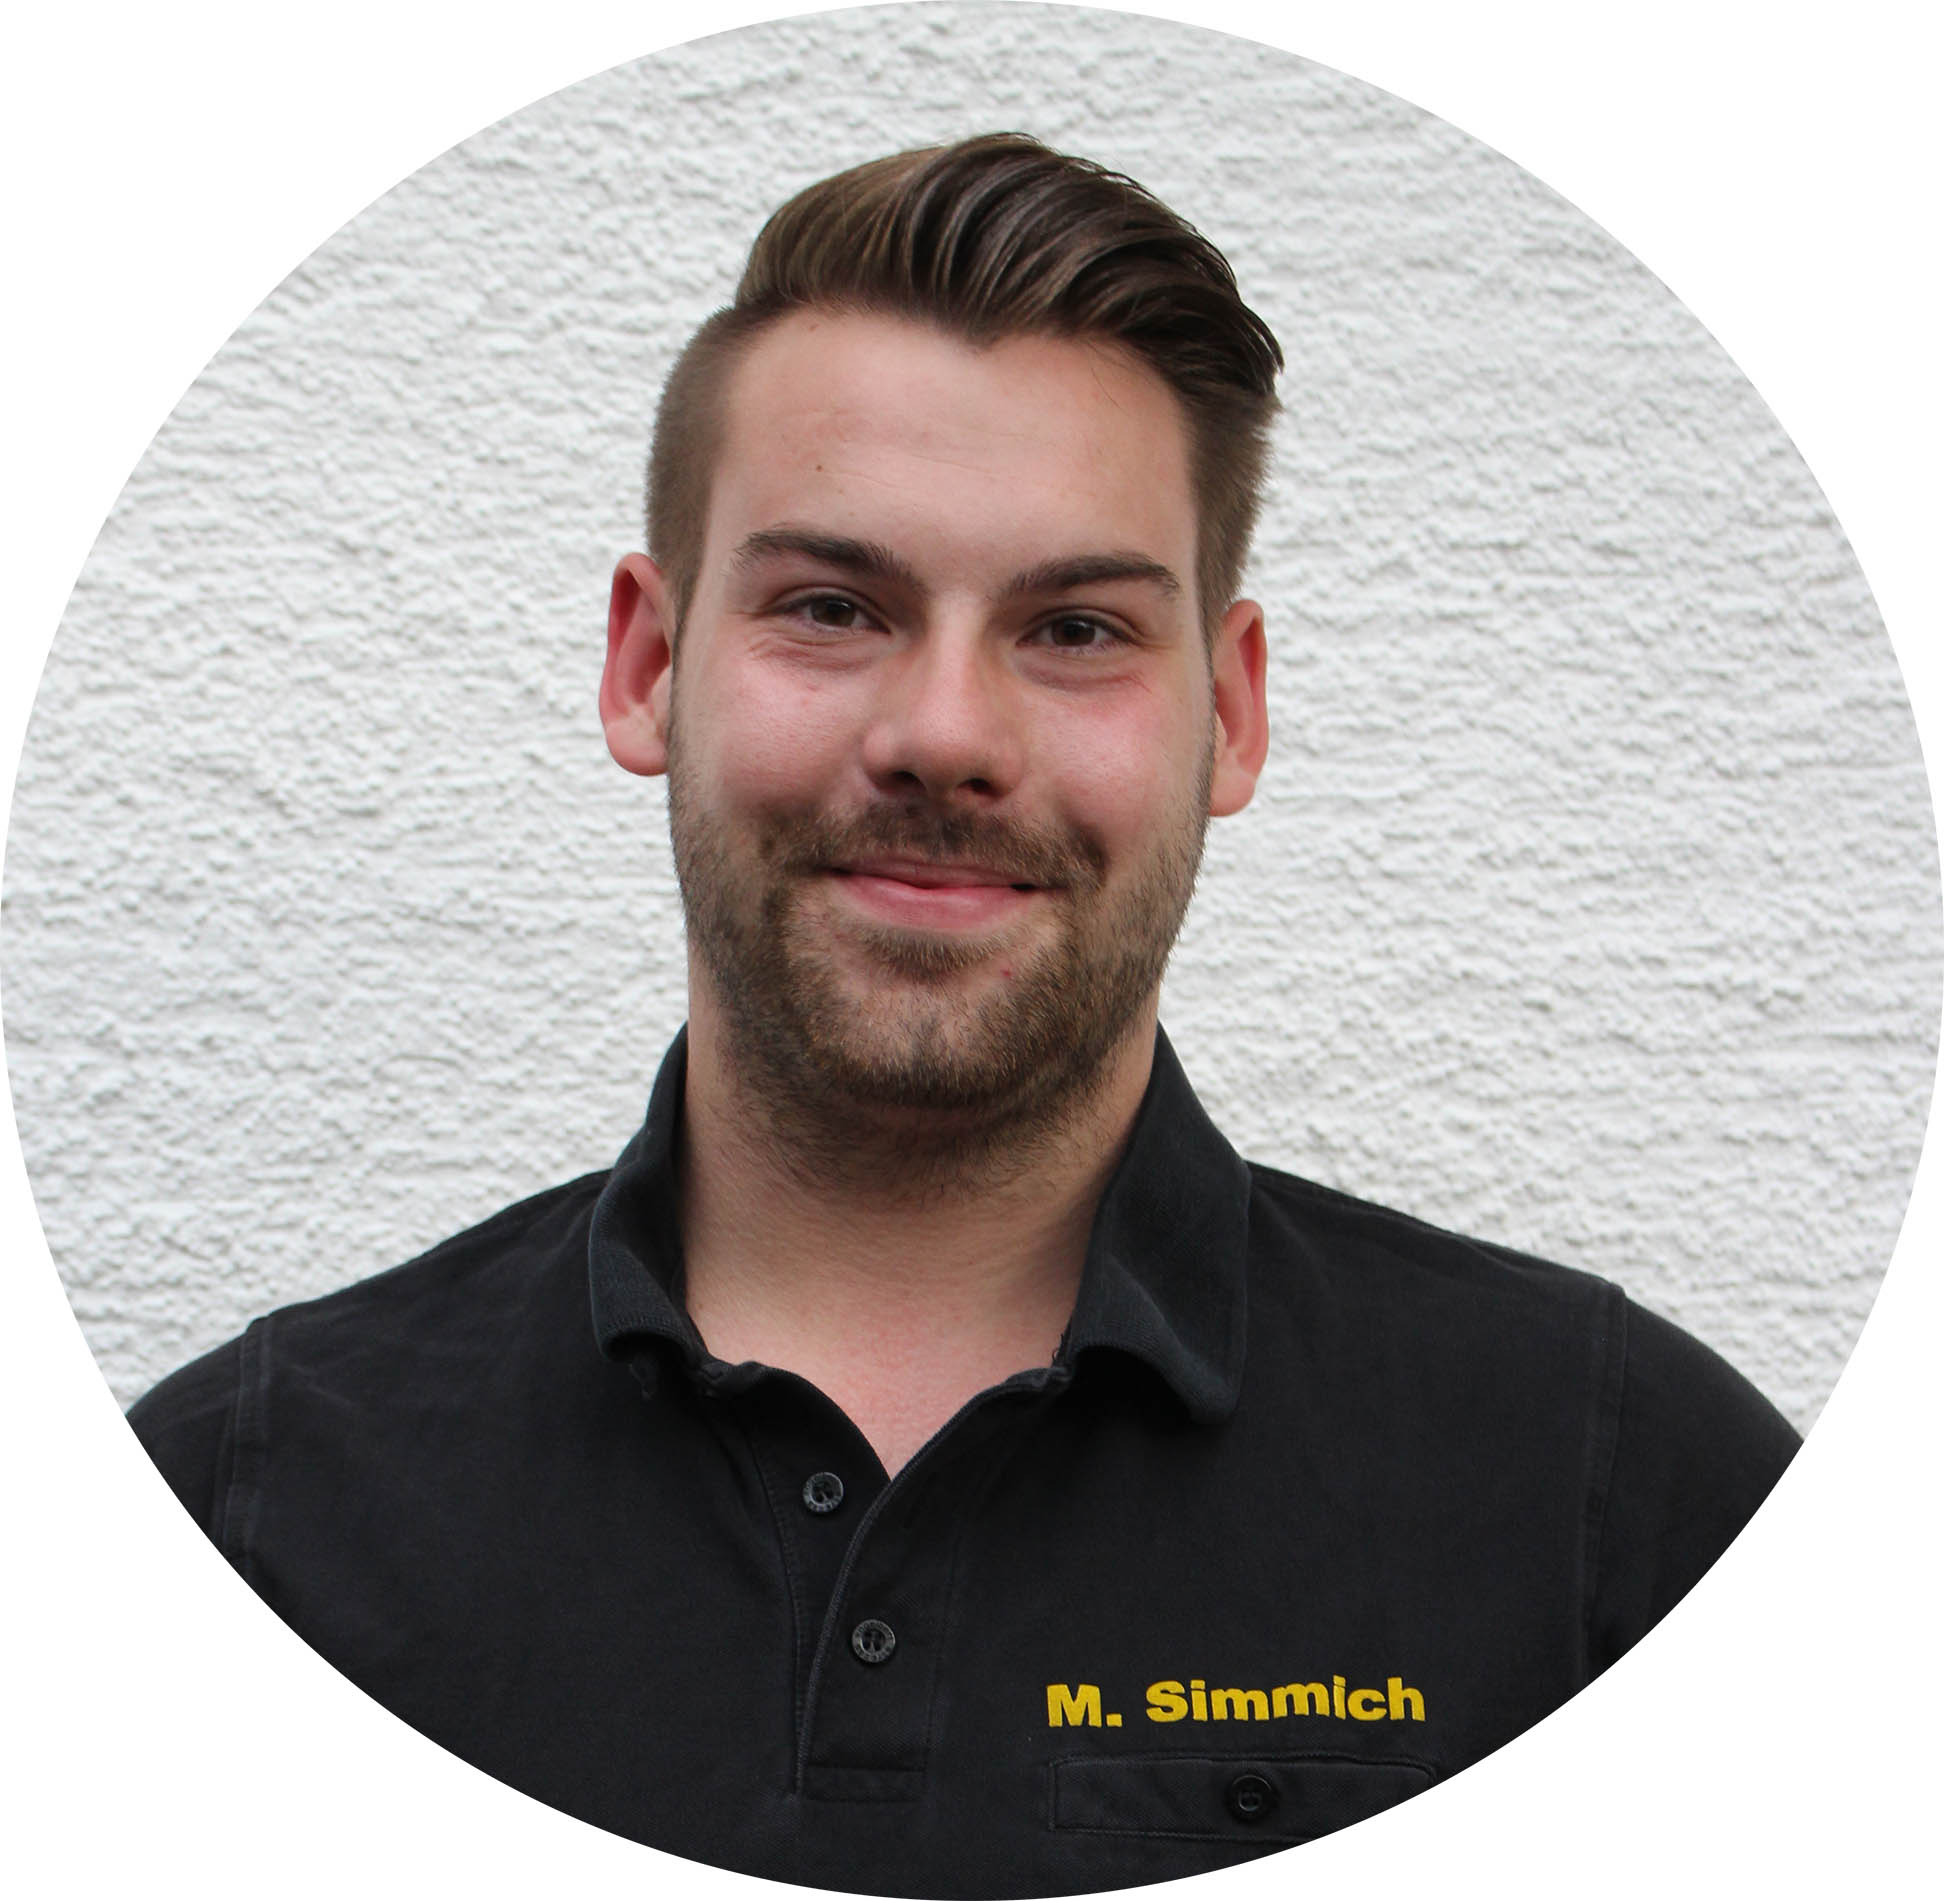 Marvin Simmich Gloede GmbH